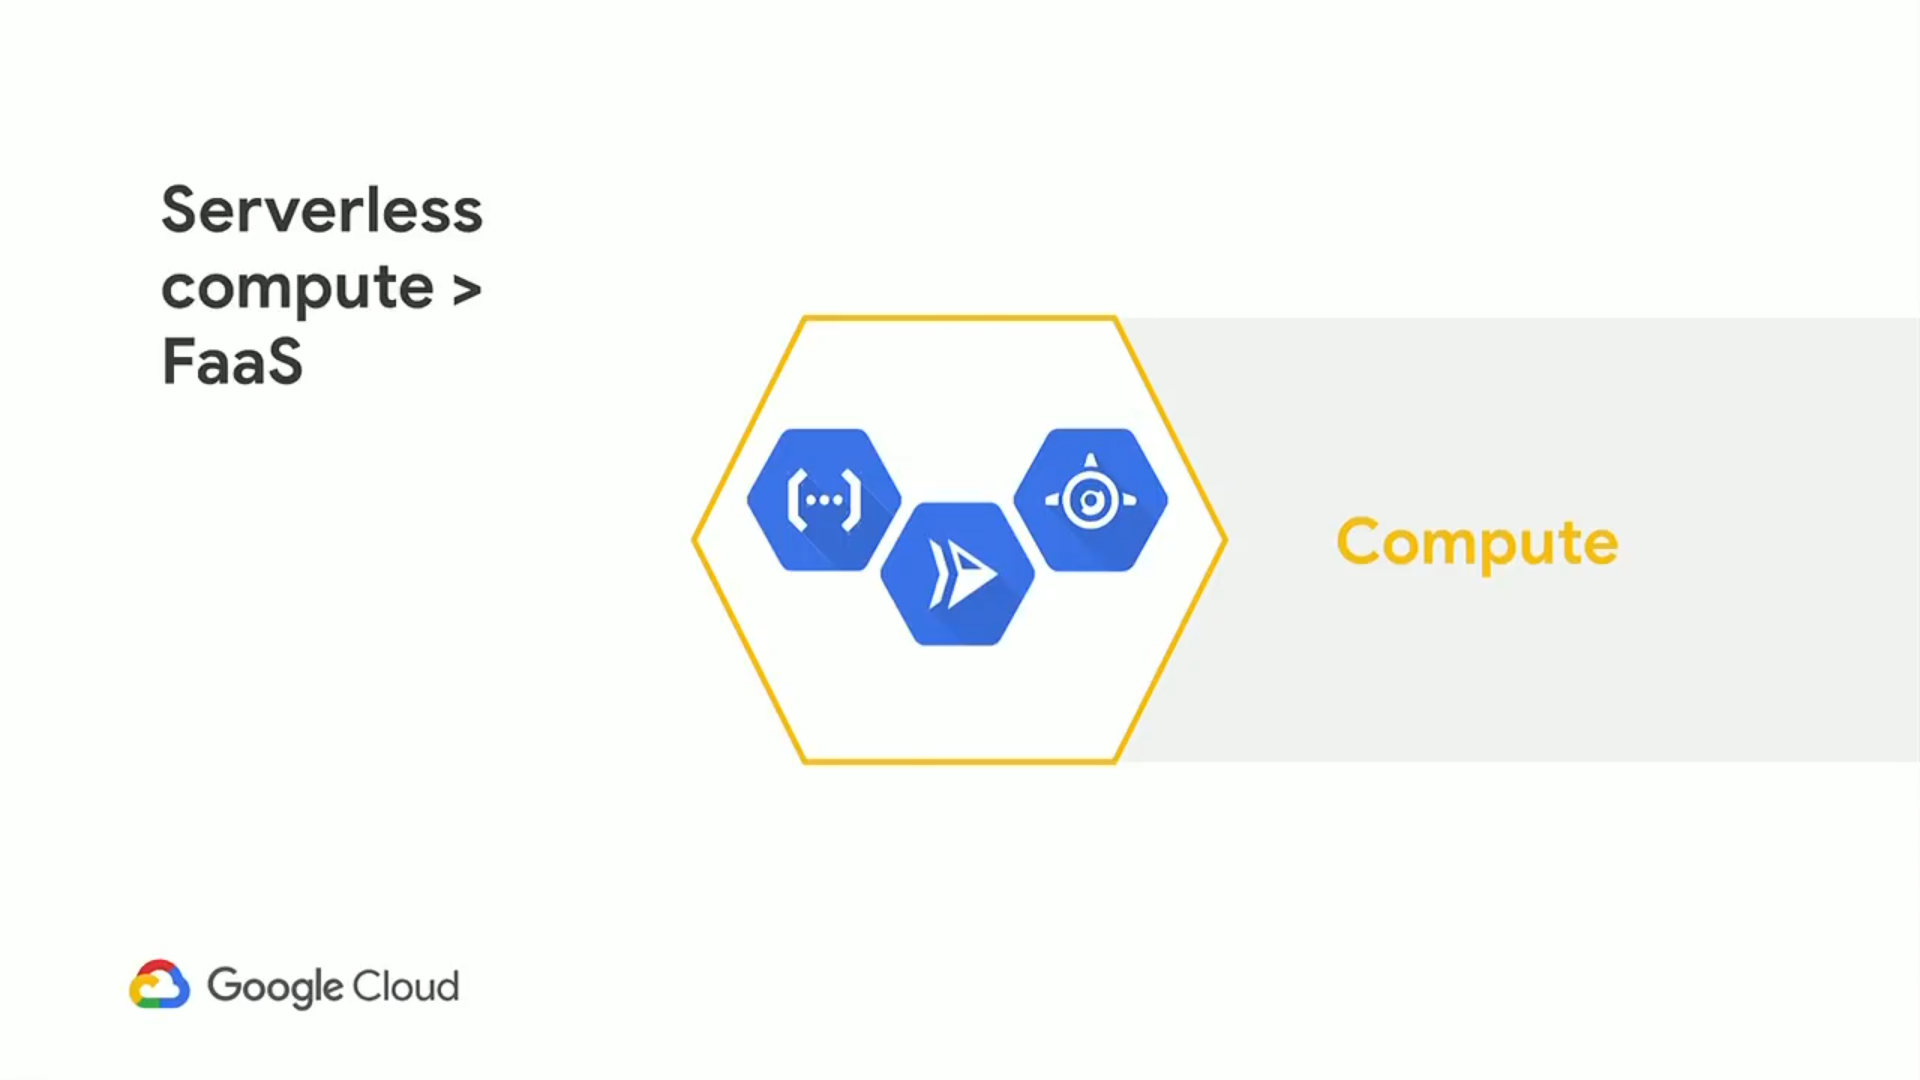 A Developer's Guide to Building Serverless Applications on the Cloud - Part 1 (Deployment)